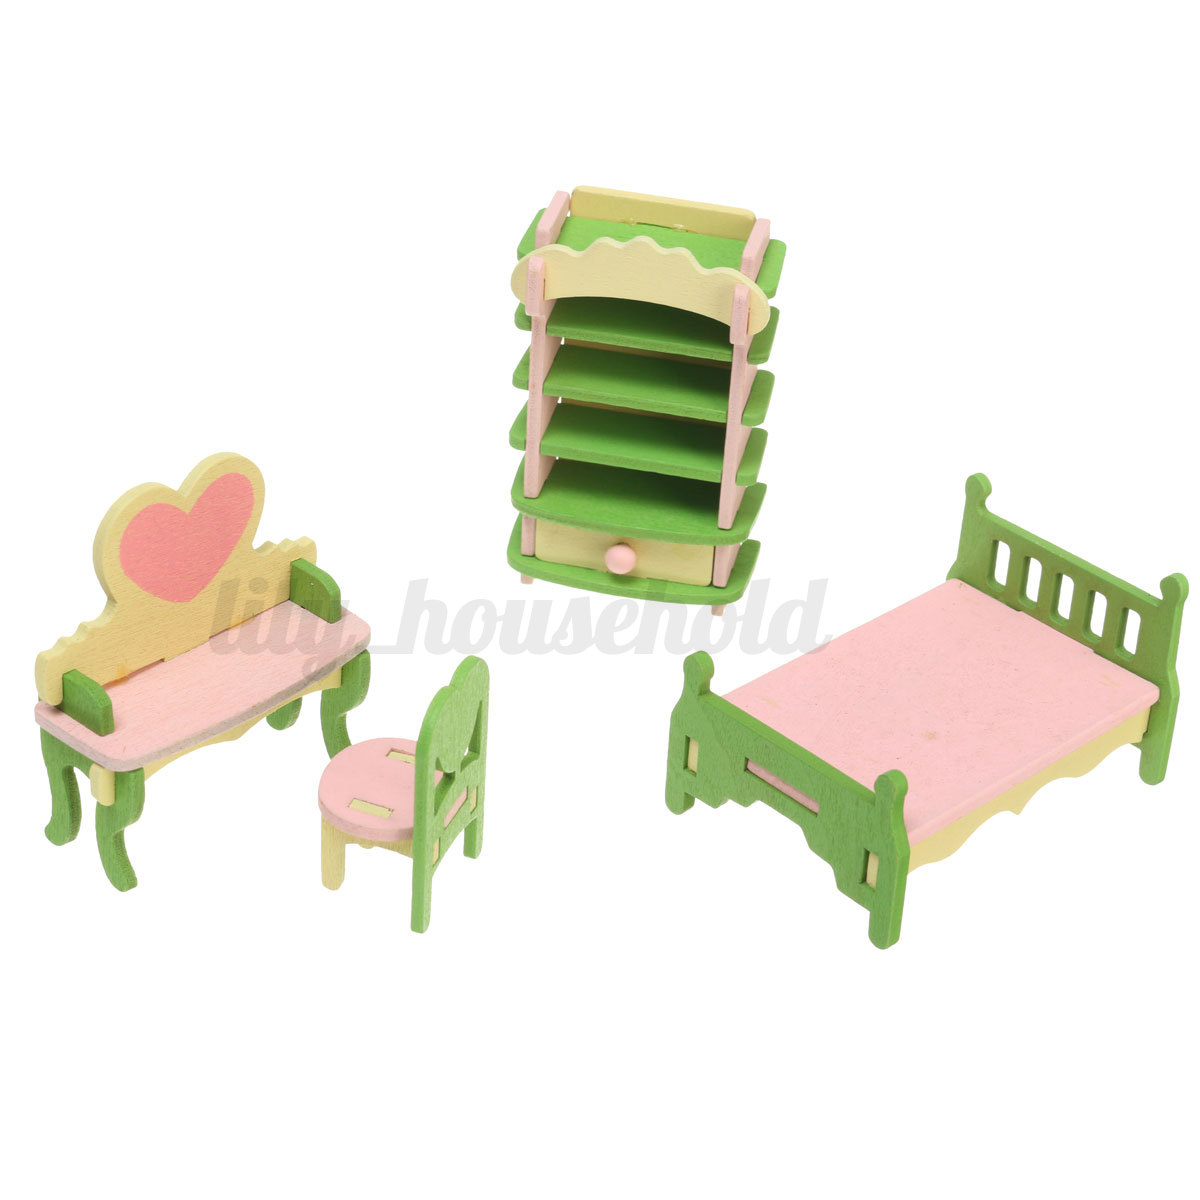 puppenhaus zubeh r puppenstube holz einrichtung. Black Bedroom Furniture Sets. Home Design Ideas